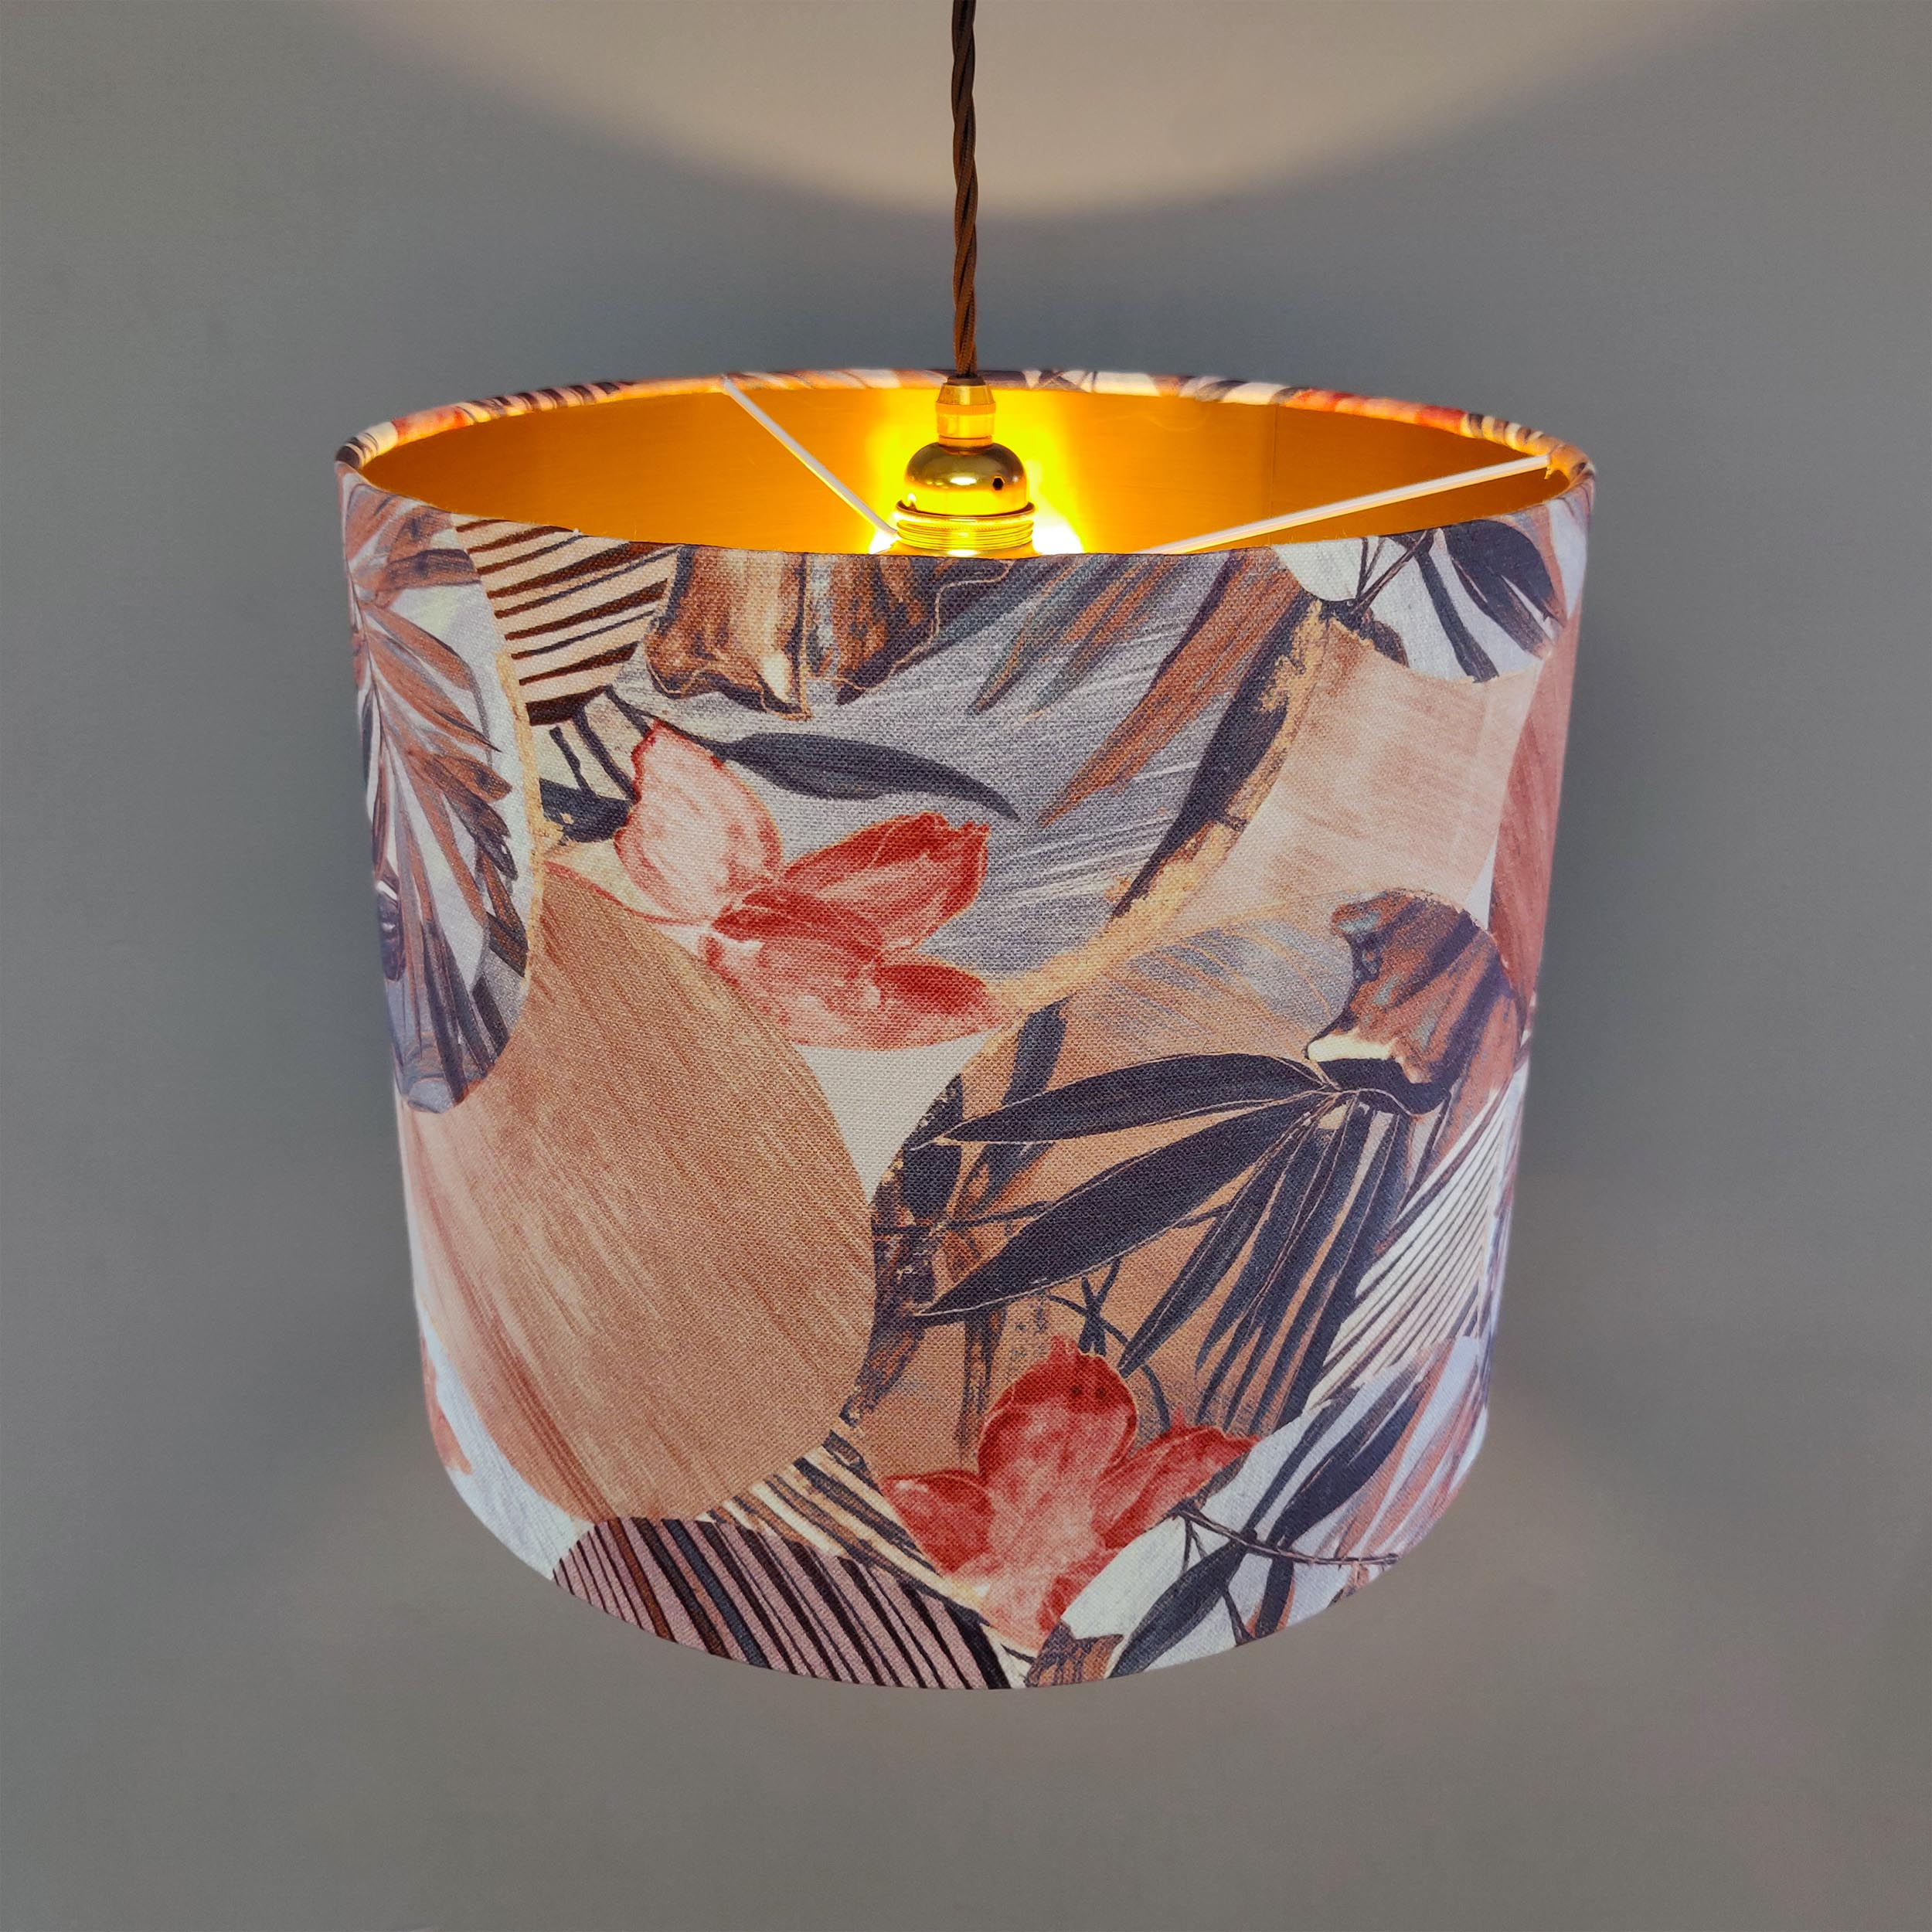 Kyoto Floral Lampshade with Copper Lining